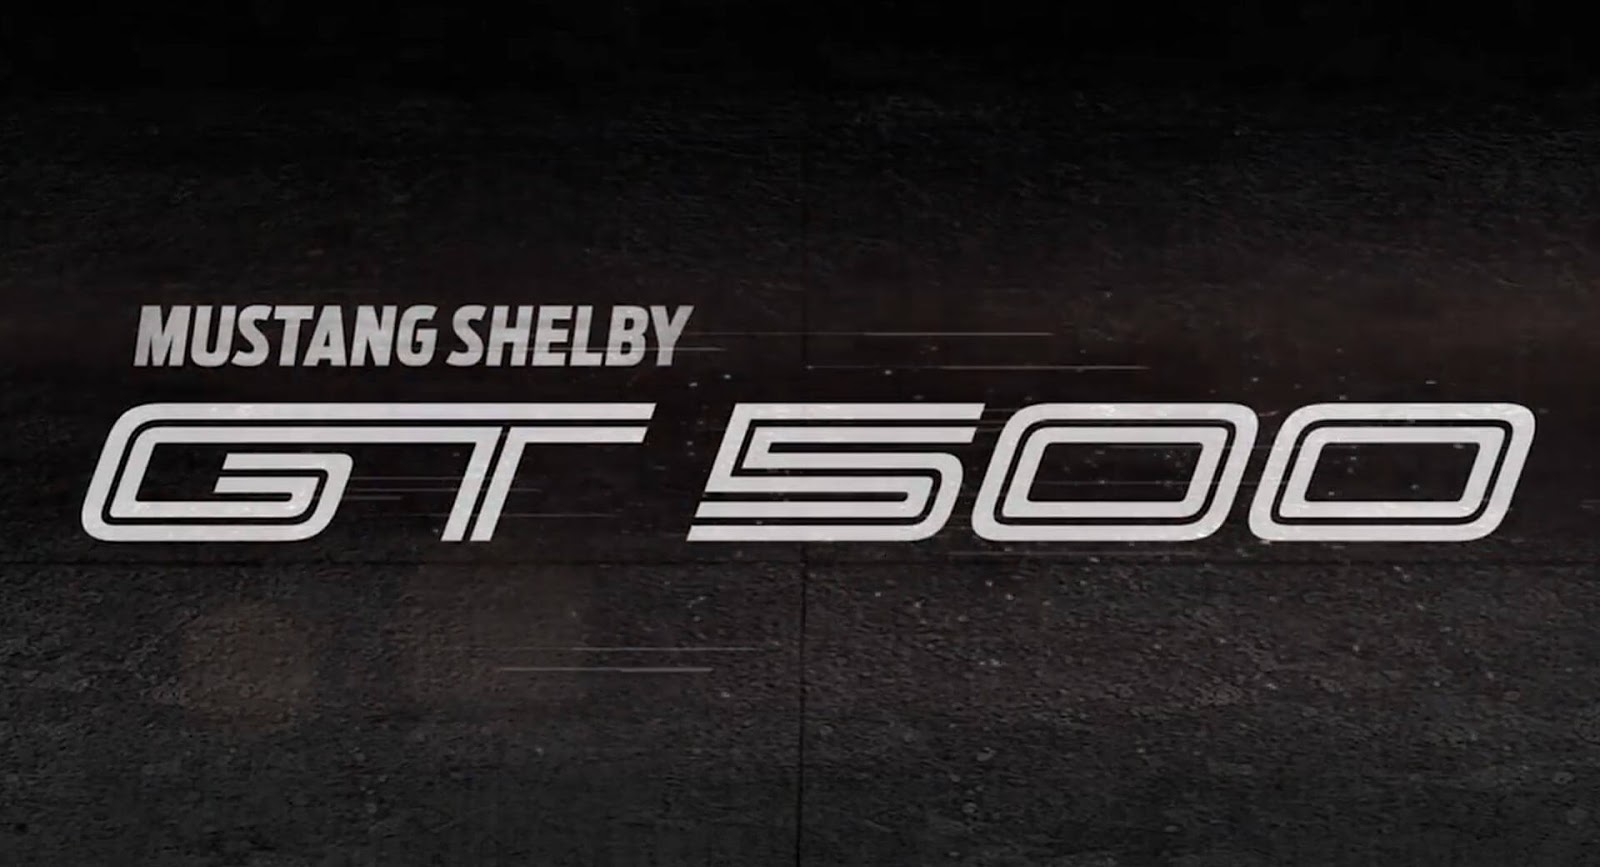 Amazing Ford Has Confirmed One Of The Worst Kept Secrets In Detroit, A New Mustang  Shelby GT500 Is Coming To Battle The Chevrolet Camaro ZL1.